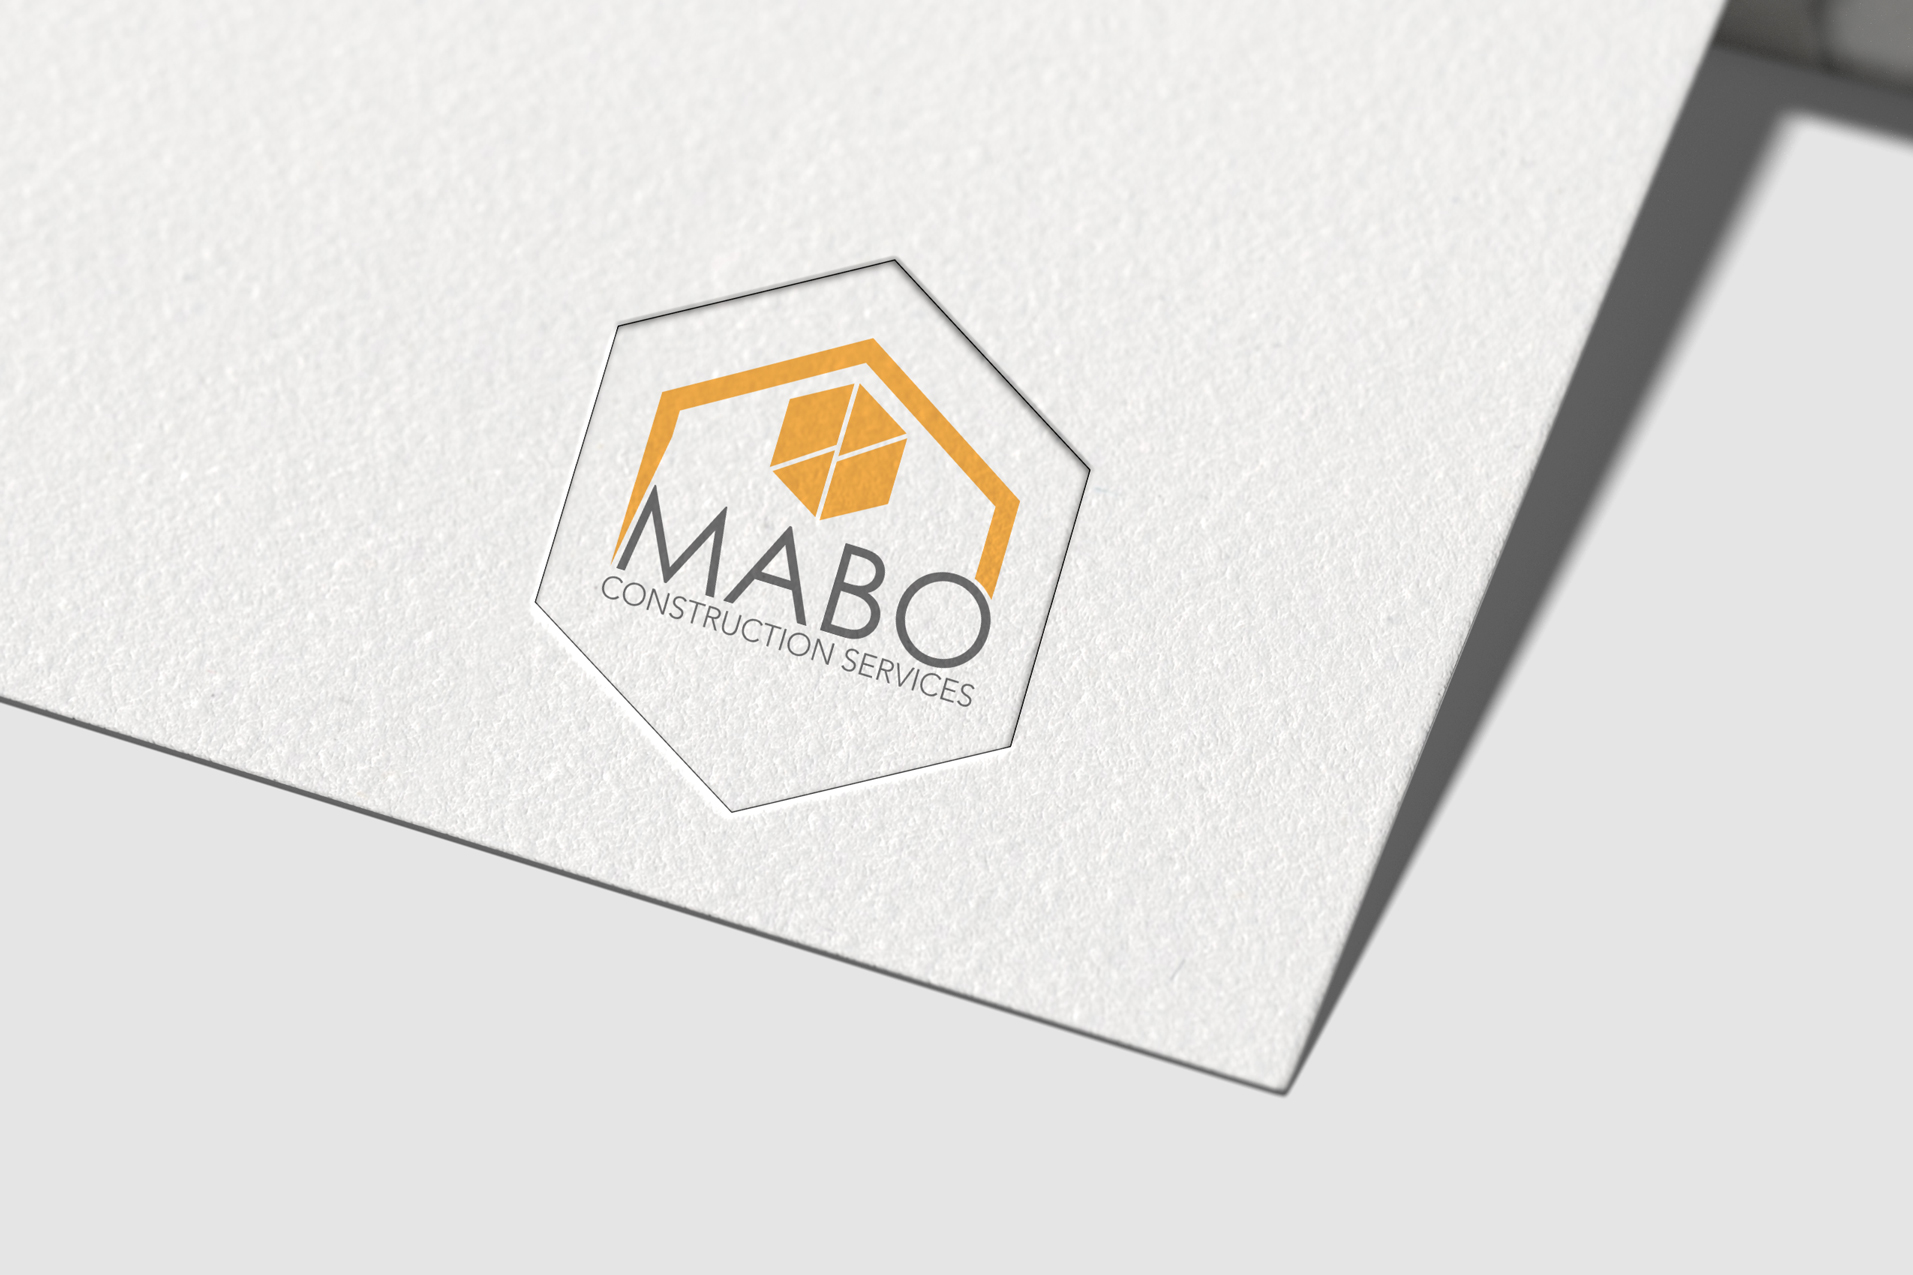 MABO-Construction-Services-logo-on-paper